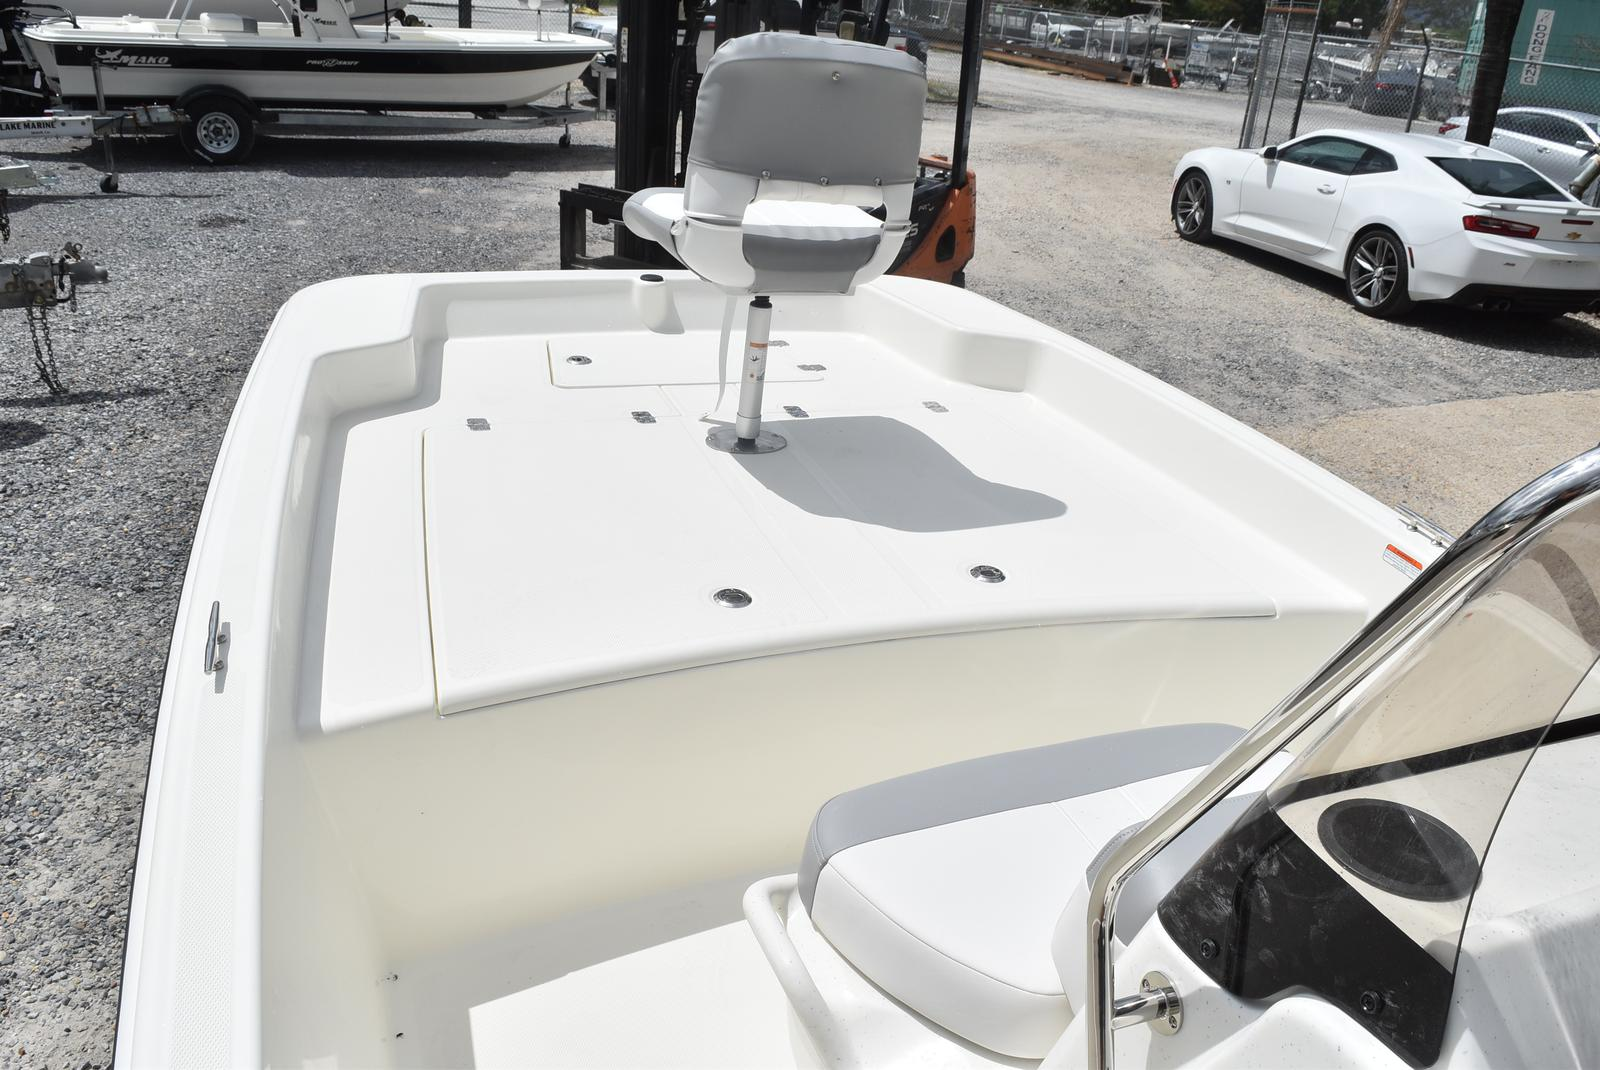 2020 Mako boat for sale, model of the boat is Pro Skiff 17, 75 ELPT & Image # 400 of 702